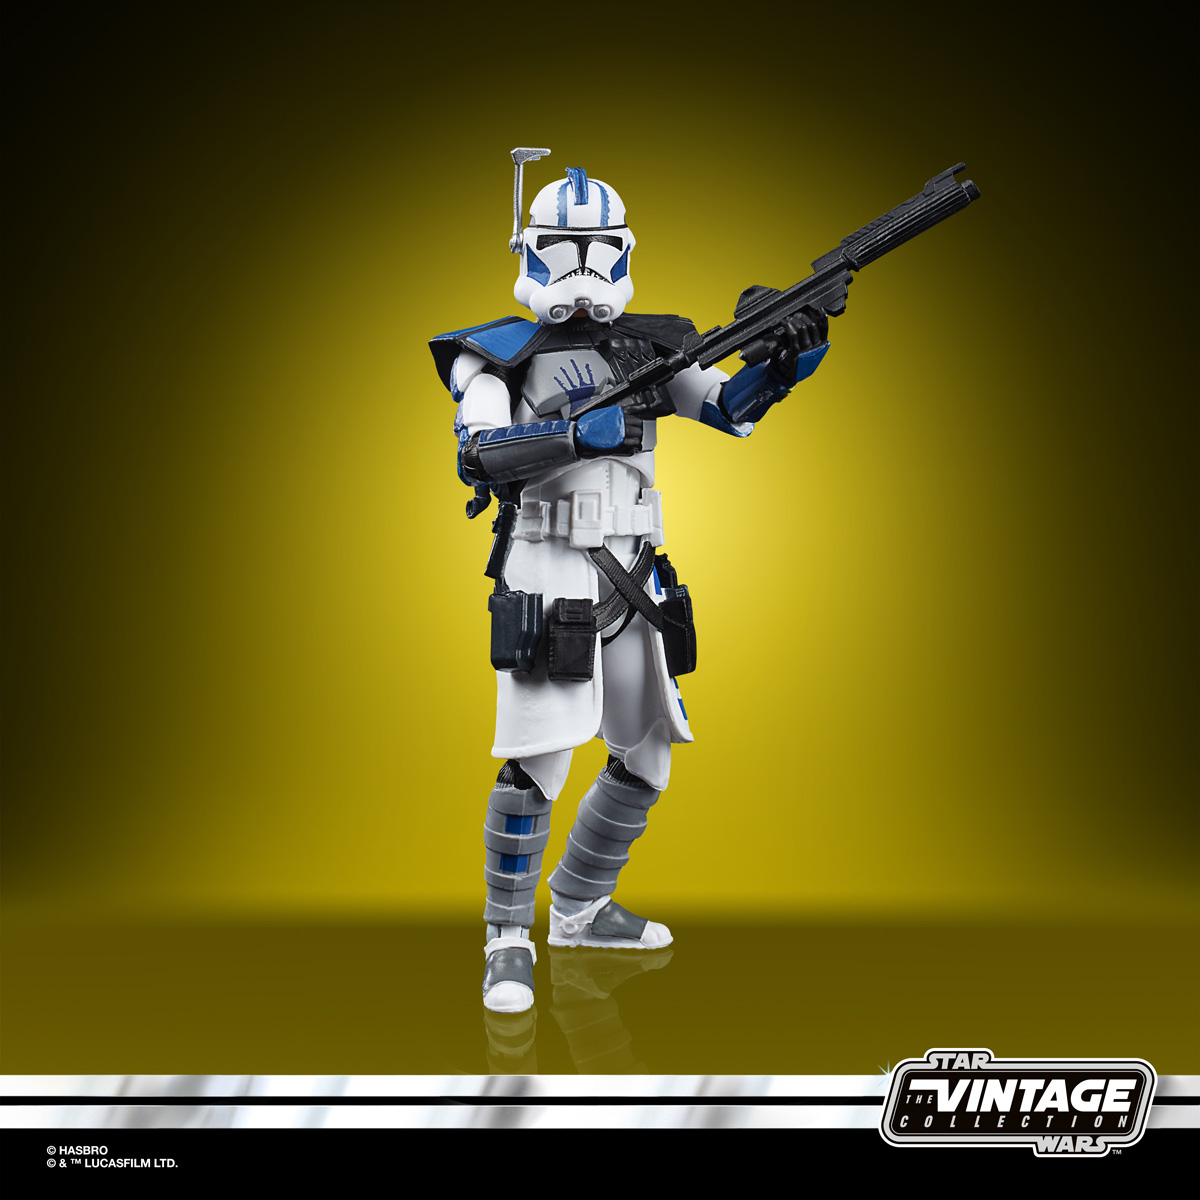 star-wars-the-vintage-collection-star-wars-the-clone-wars-501st-legion-arc-troopers-figure-3-pack-oop-8